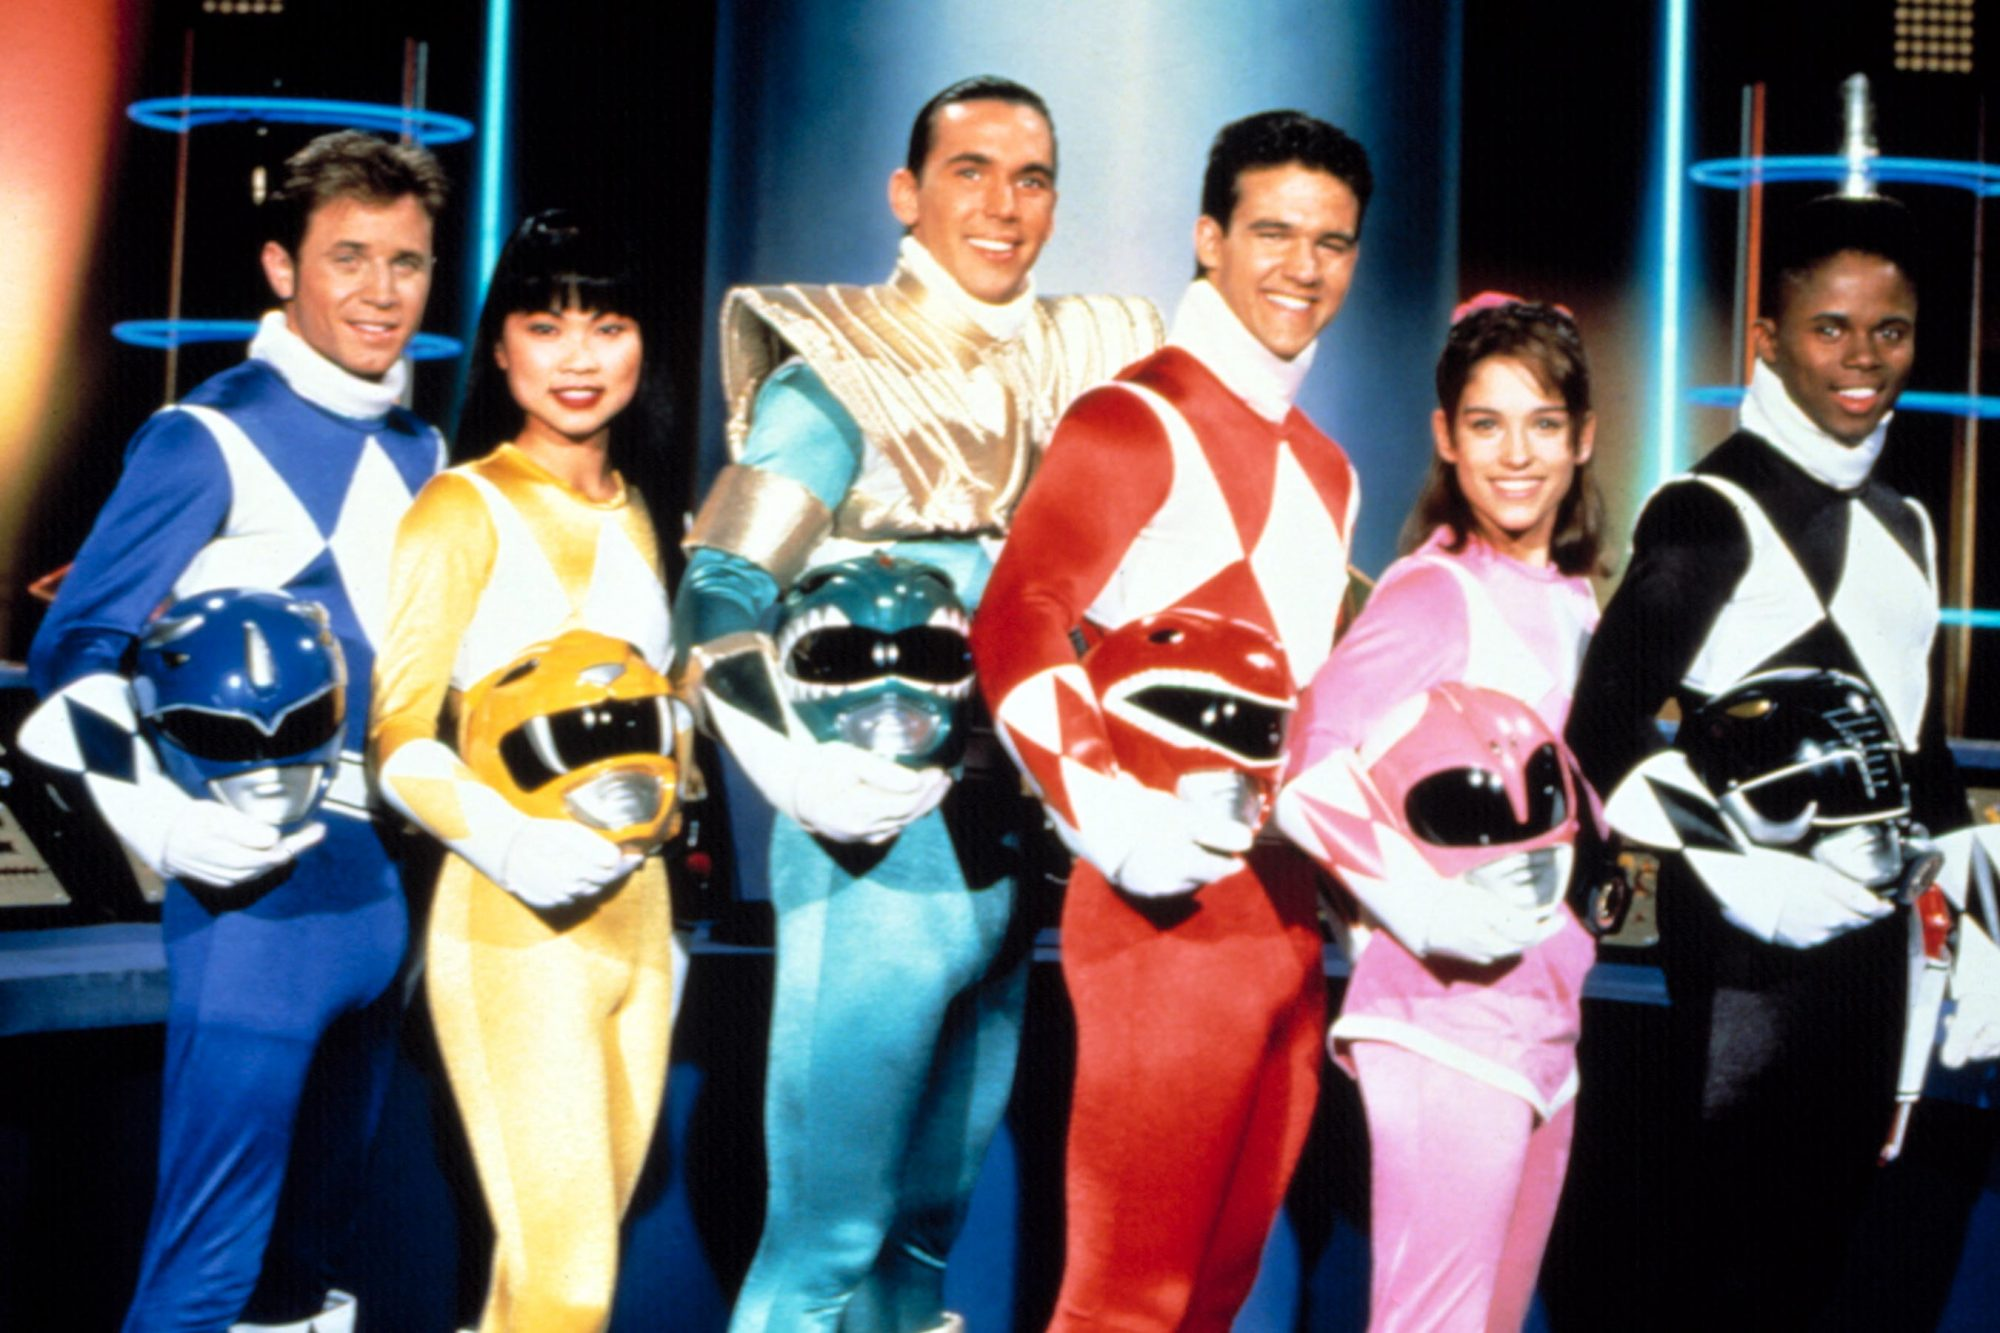 The original cast of the Mighty Morphin Power Rangers stand next to one another in their Power Ranger outfits. They each holds their helmets in their arms and smile at the camera.